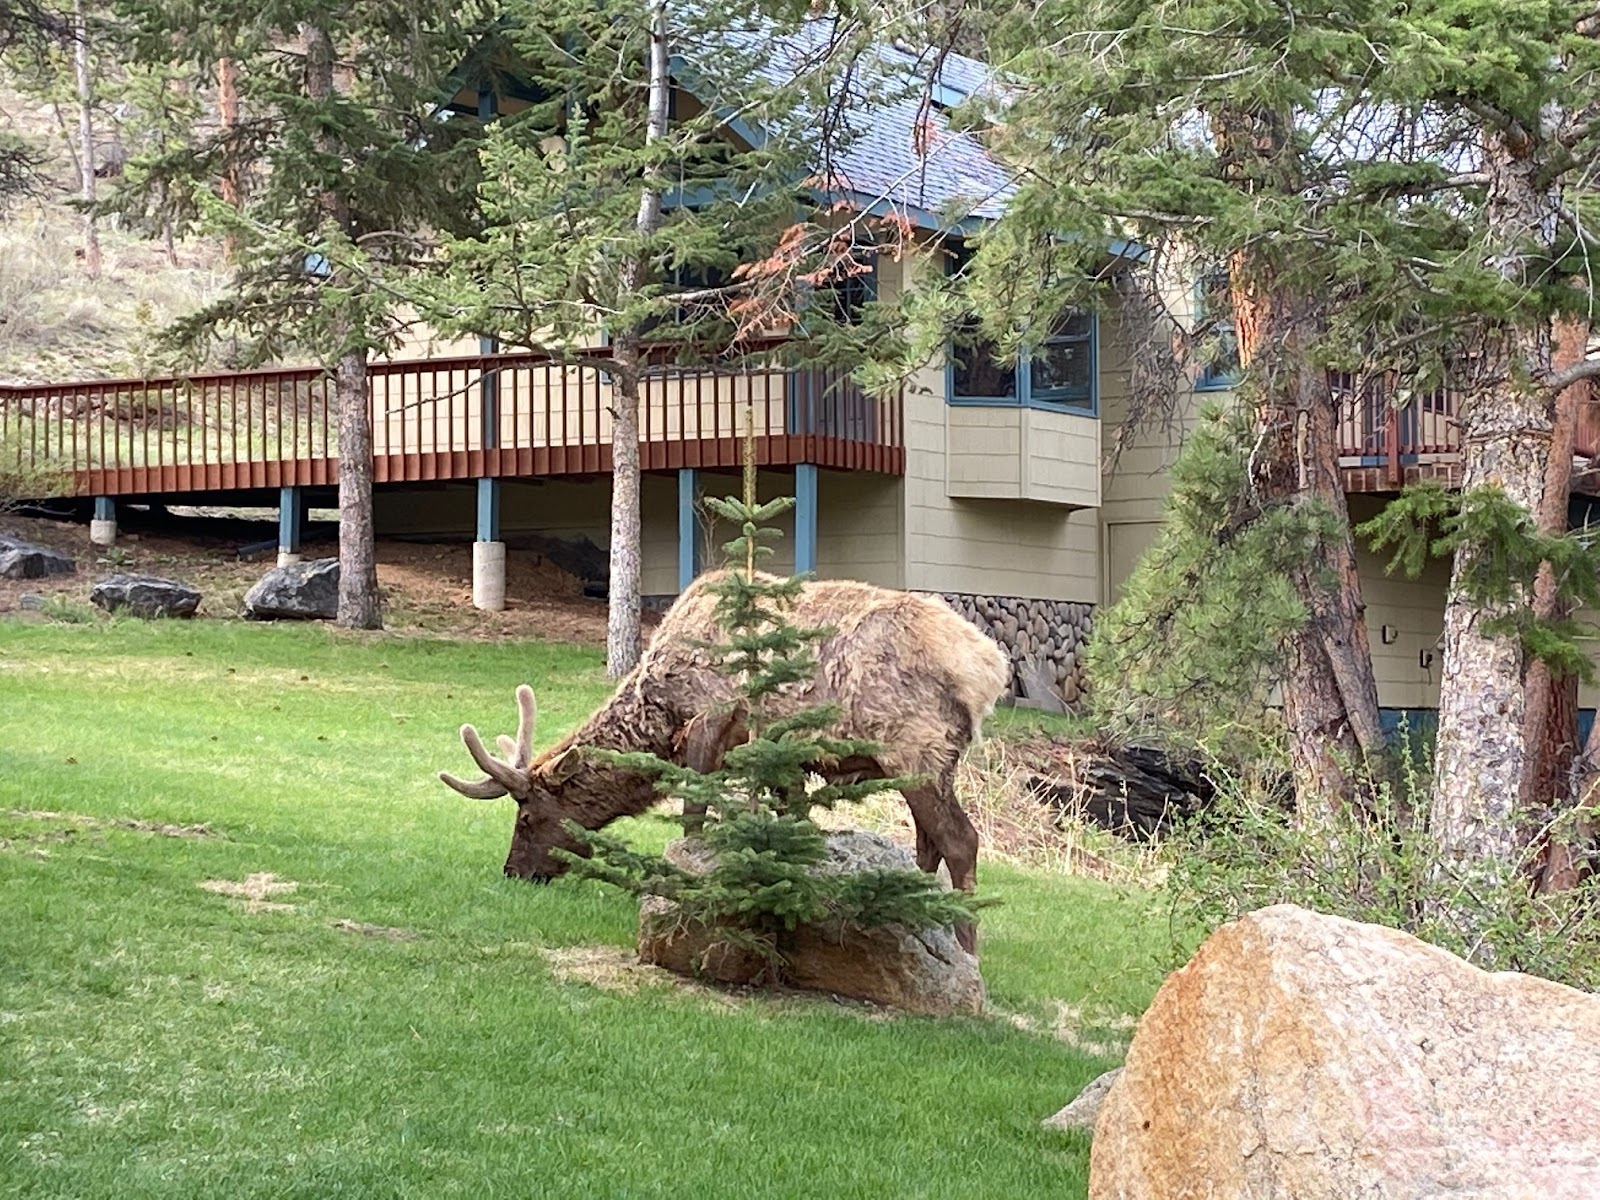 Estes Park Bed and Breakfast, 5 things to ask before checking in!